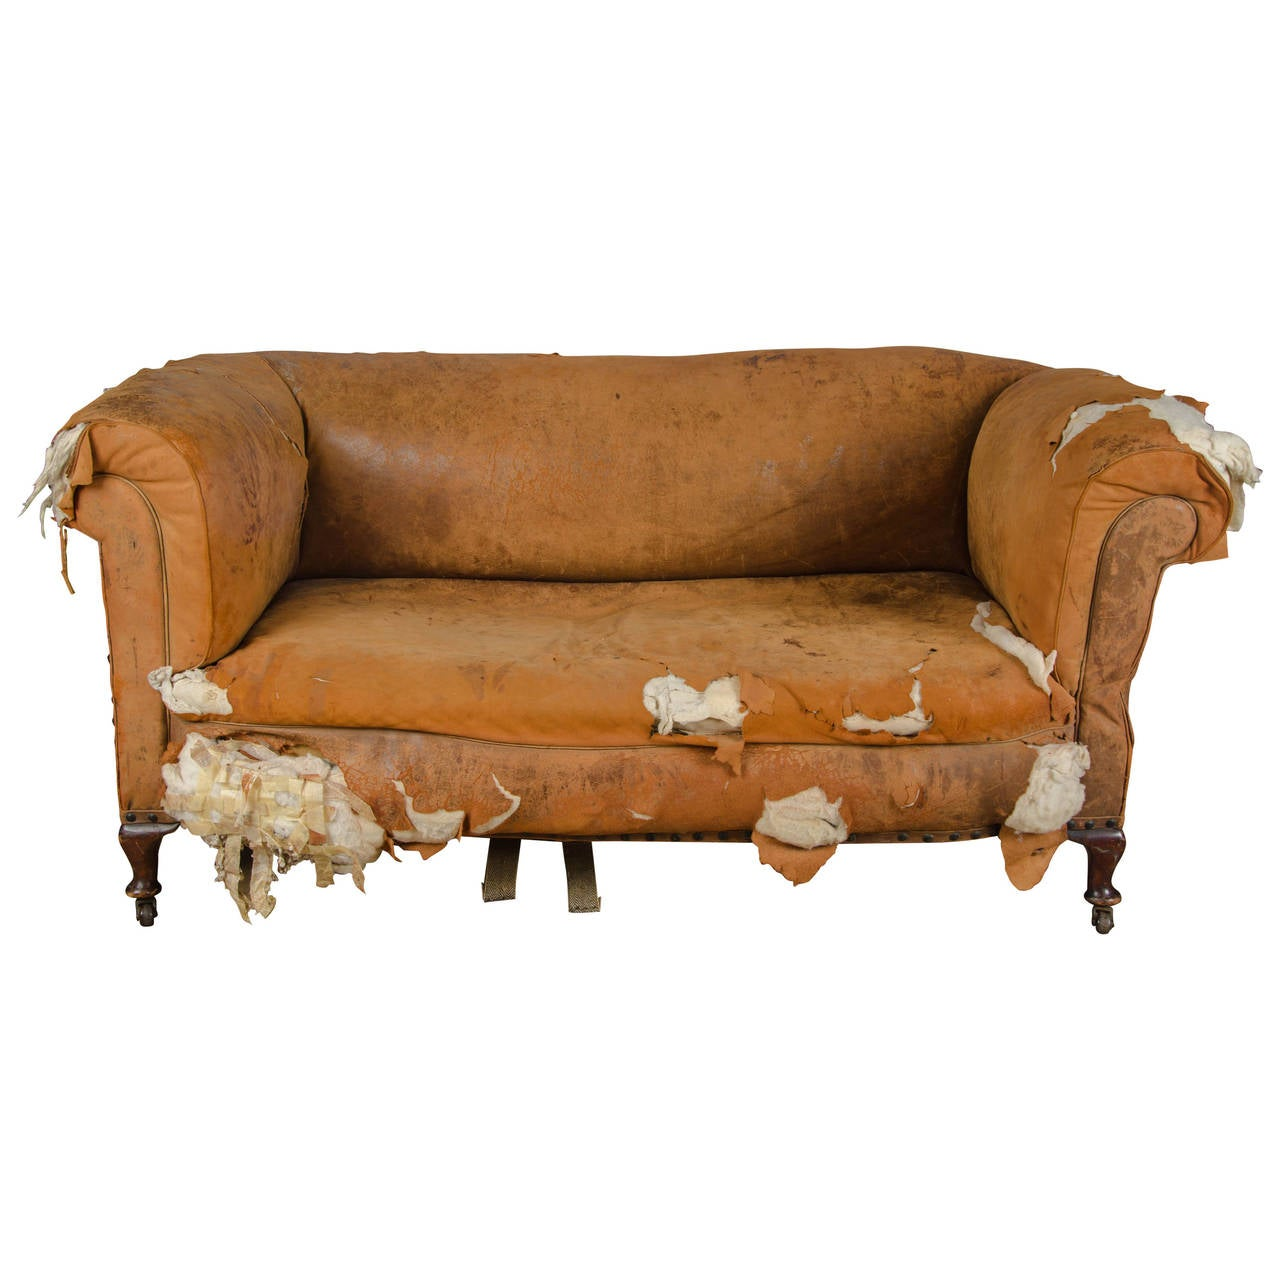 distressed leather dining chairs uk party chair covers buy antique victorian drop end sofa at 1stdibs